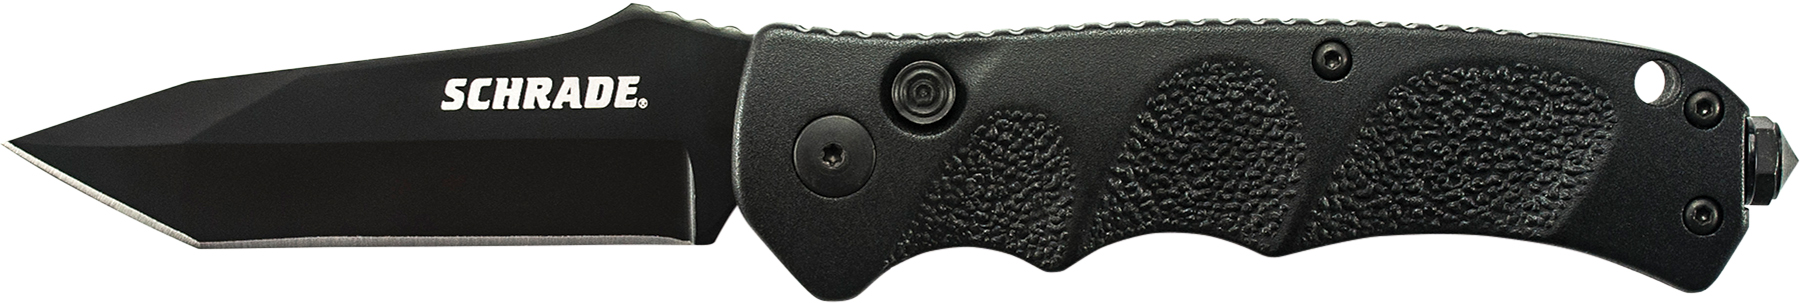 SC60BT - Schrade Black Tanto 4116 Steel, Push Button Lock, Safety On Back Of Handle